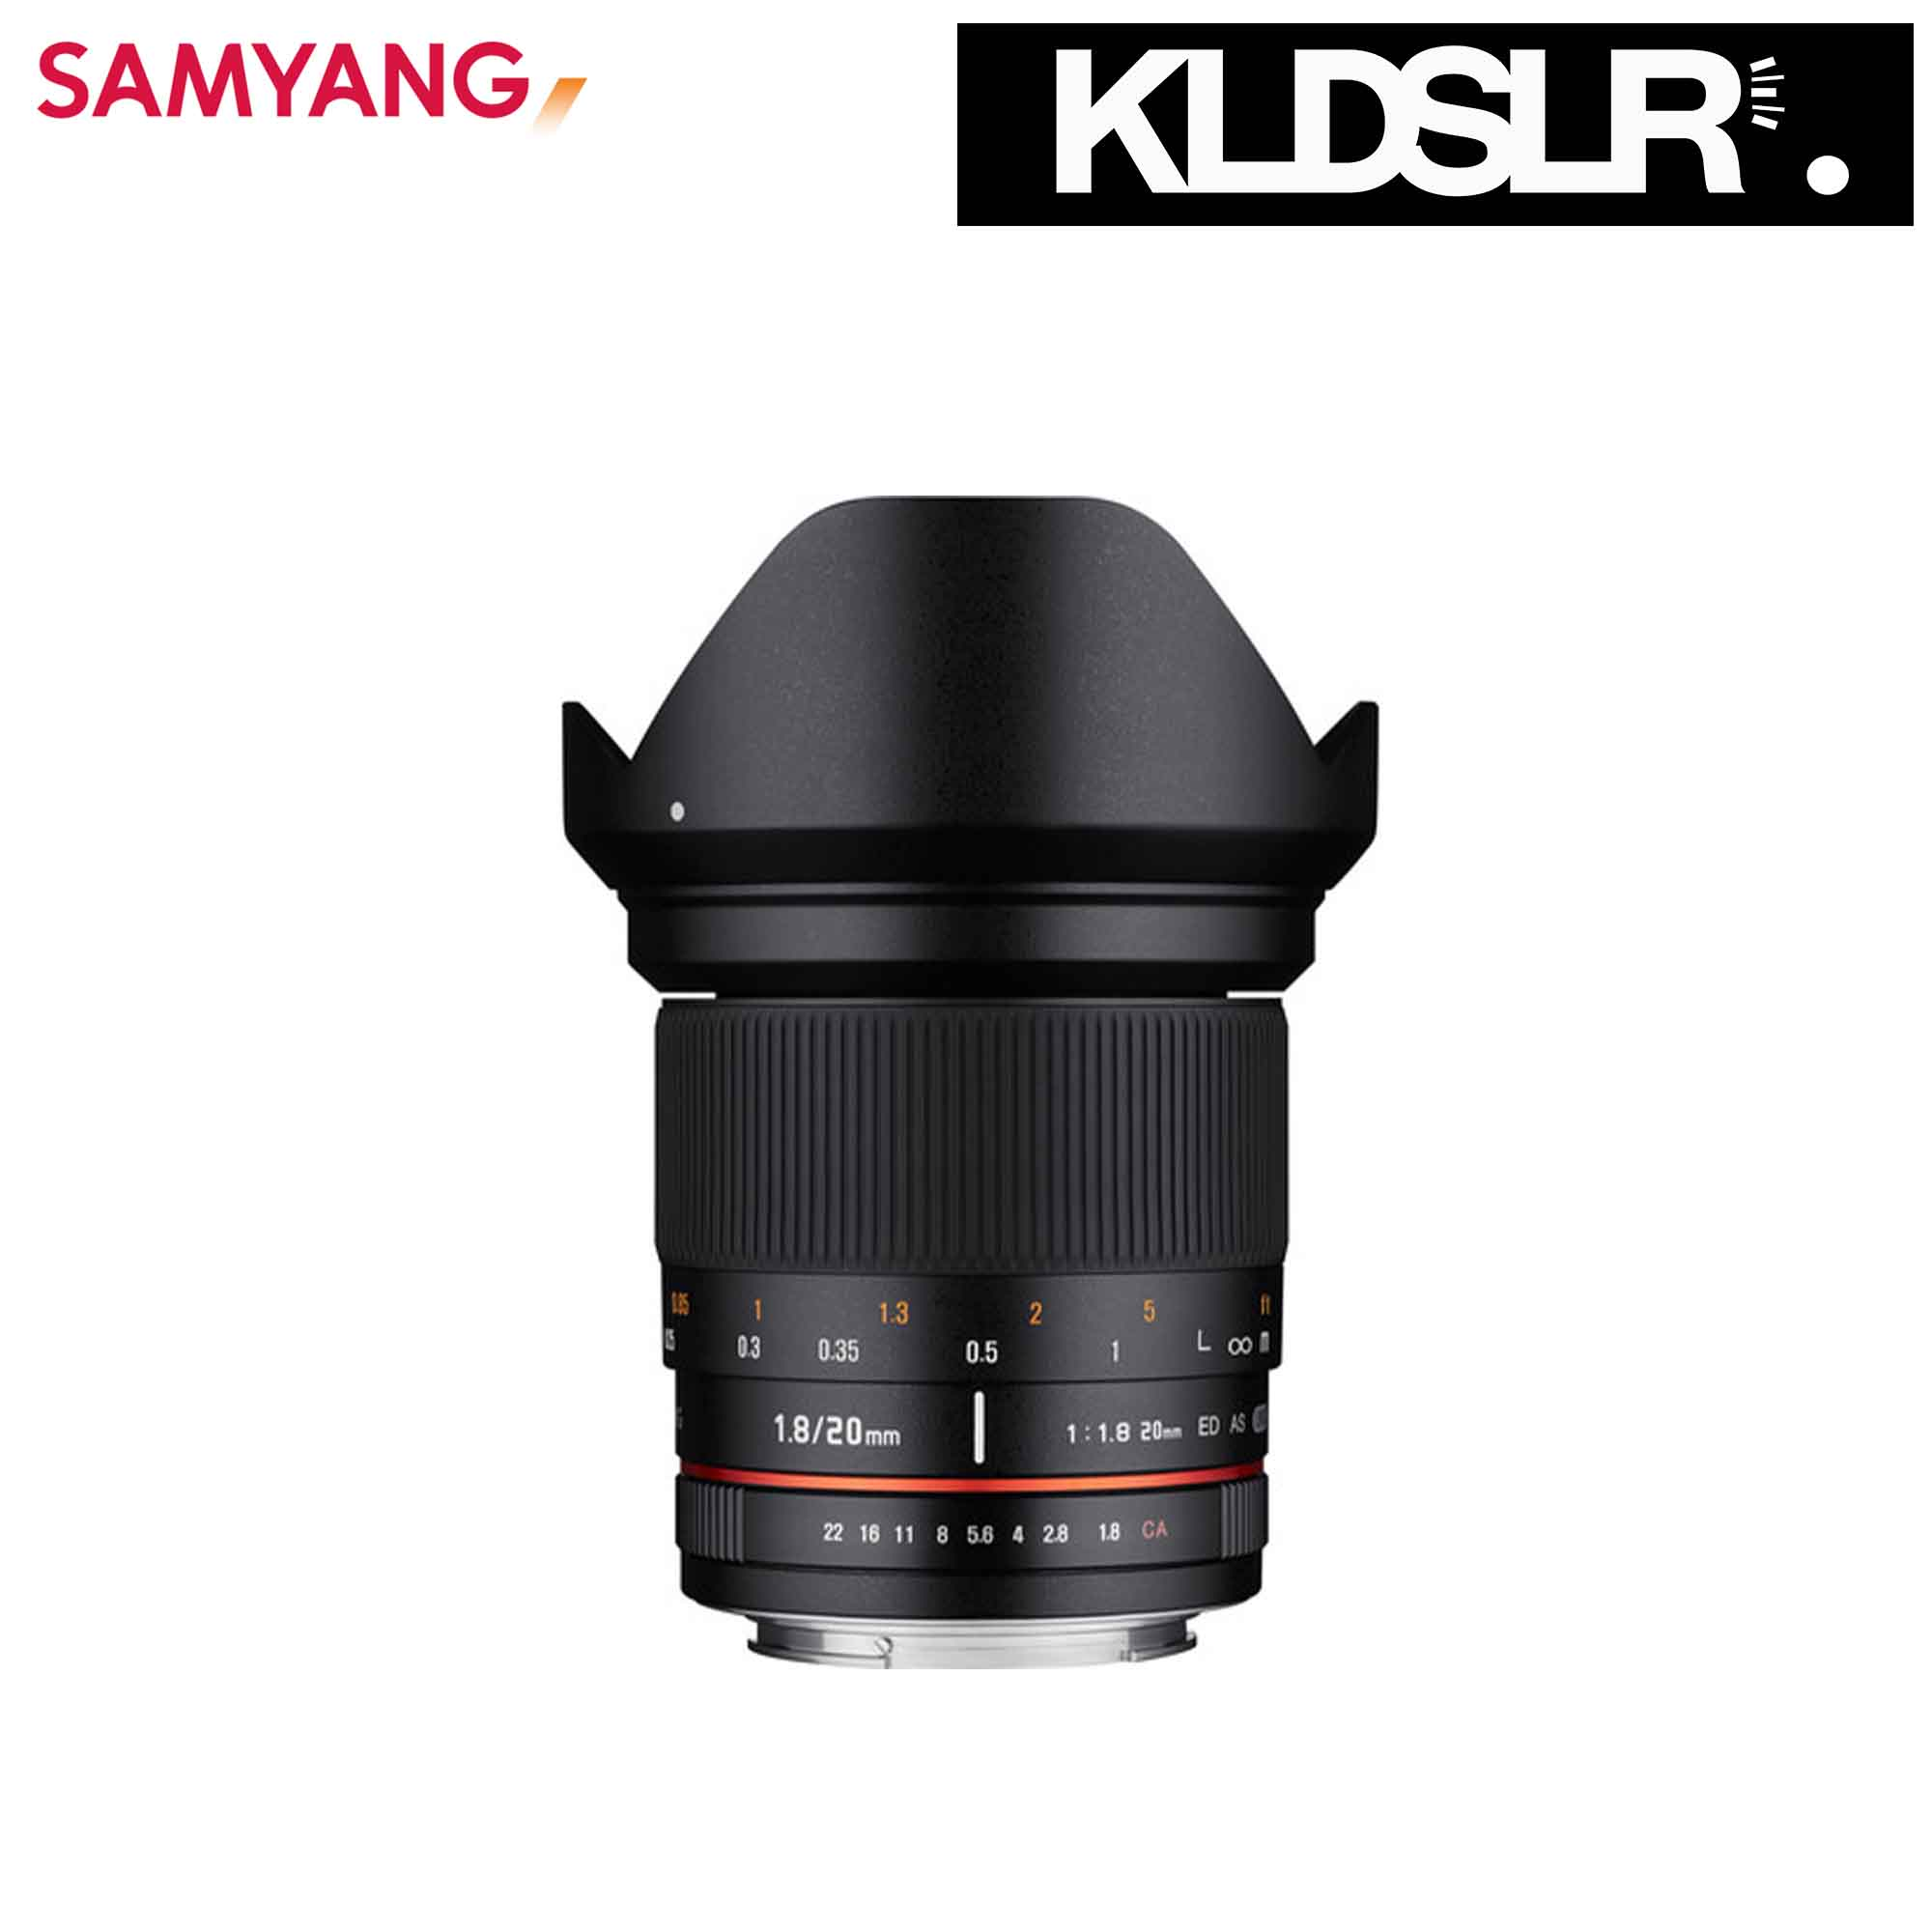 06 Samyang 20mm f/1.8 ED AS UMC Lens for nikon